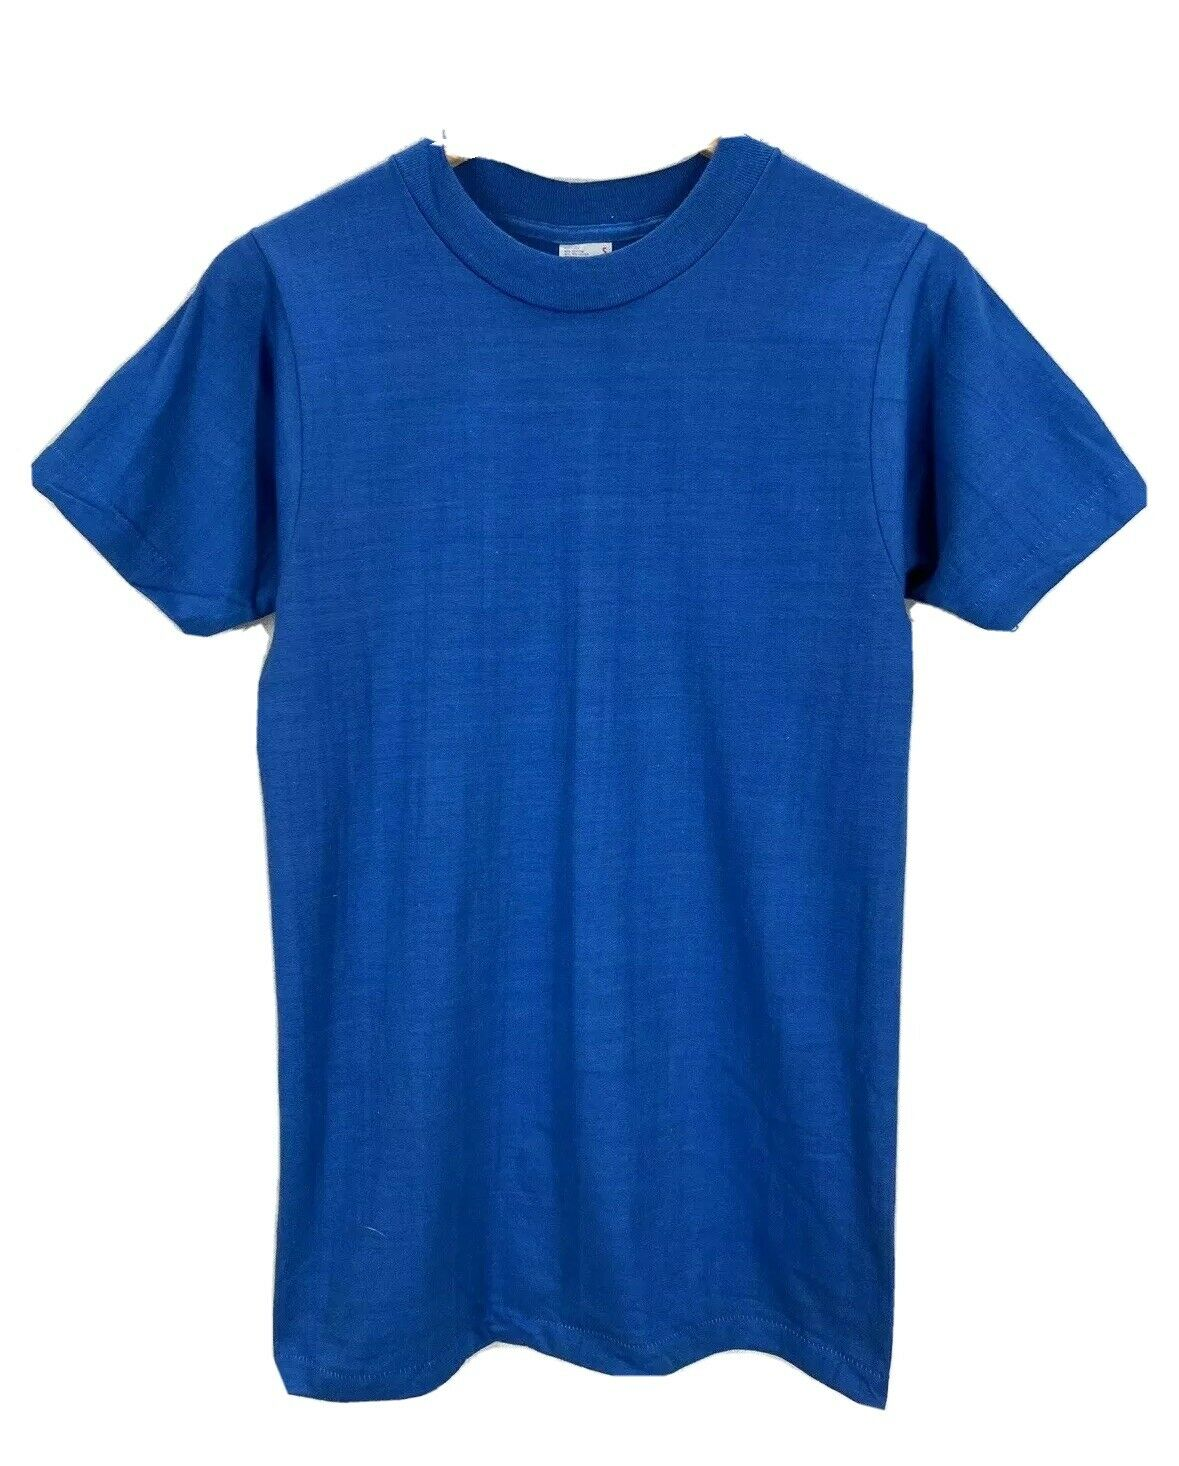 NOS Vintage 80's Blank Blue 50/50 Fruit of the Loom Single Stitch T-Shirt Small